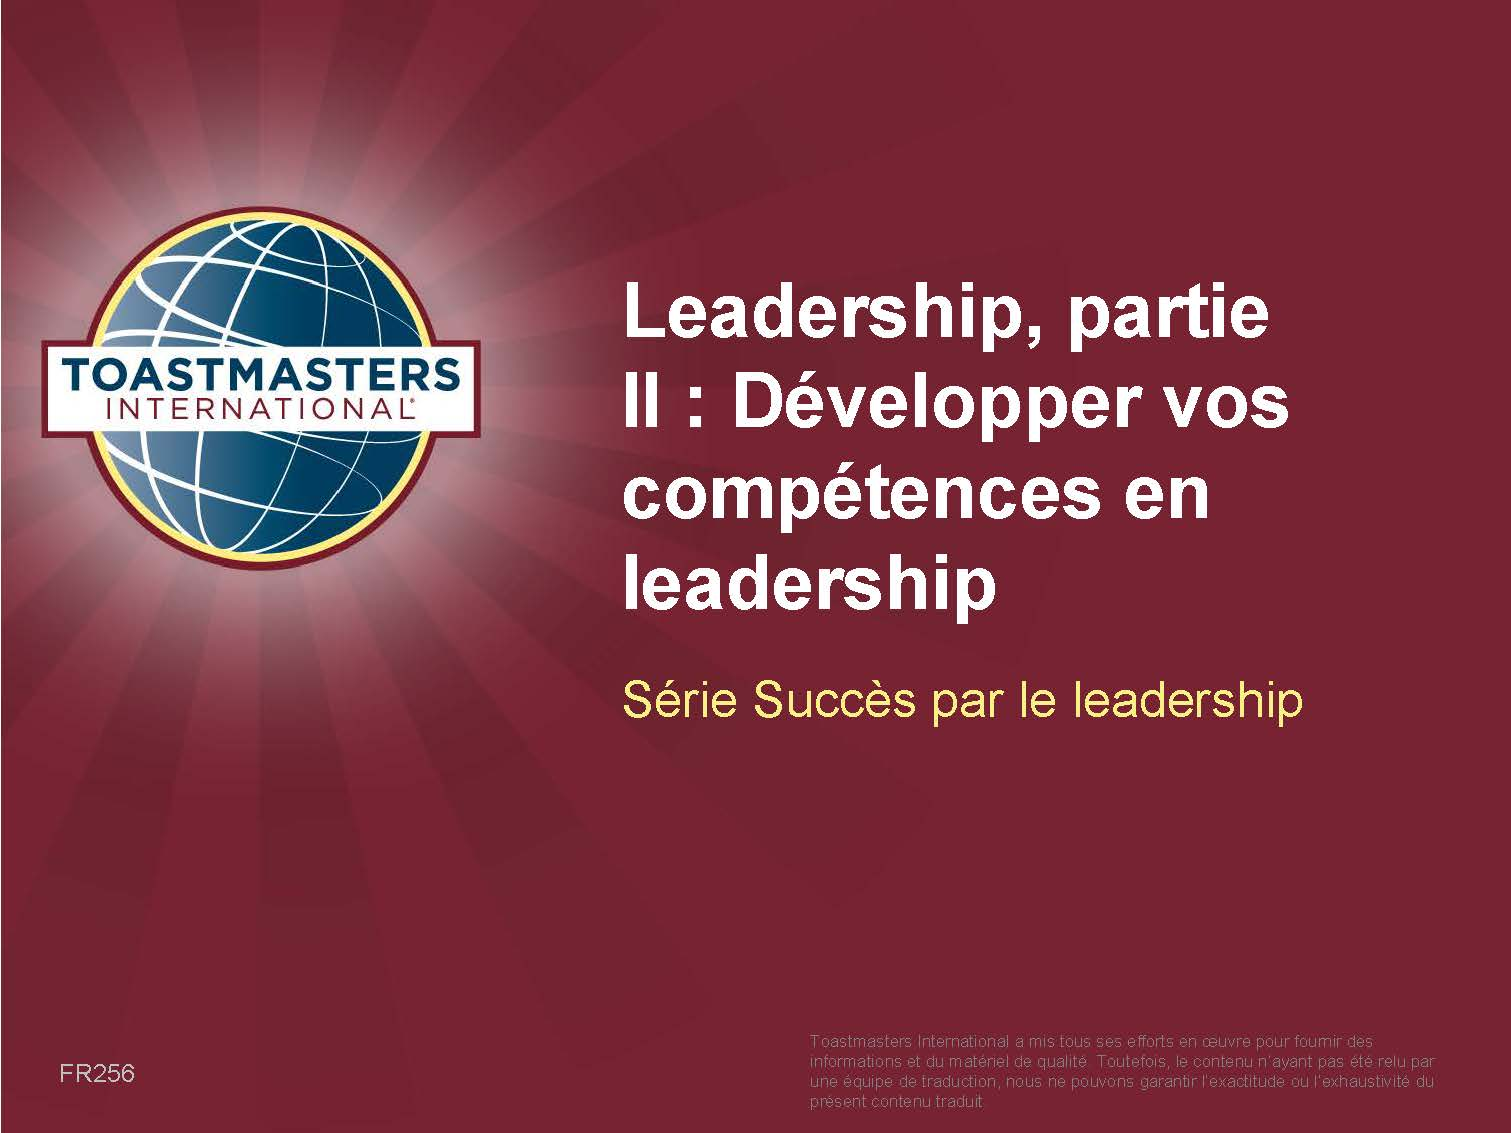 Leadership, Part II: Developing Your Leadership Skills (PPT) (French)